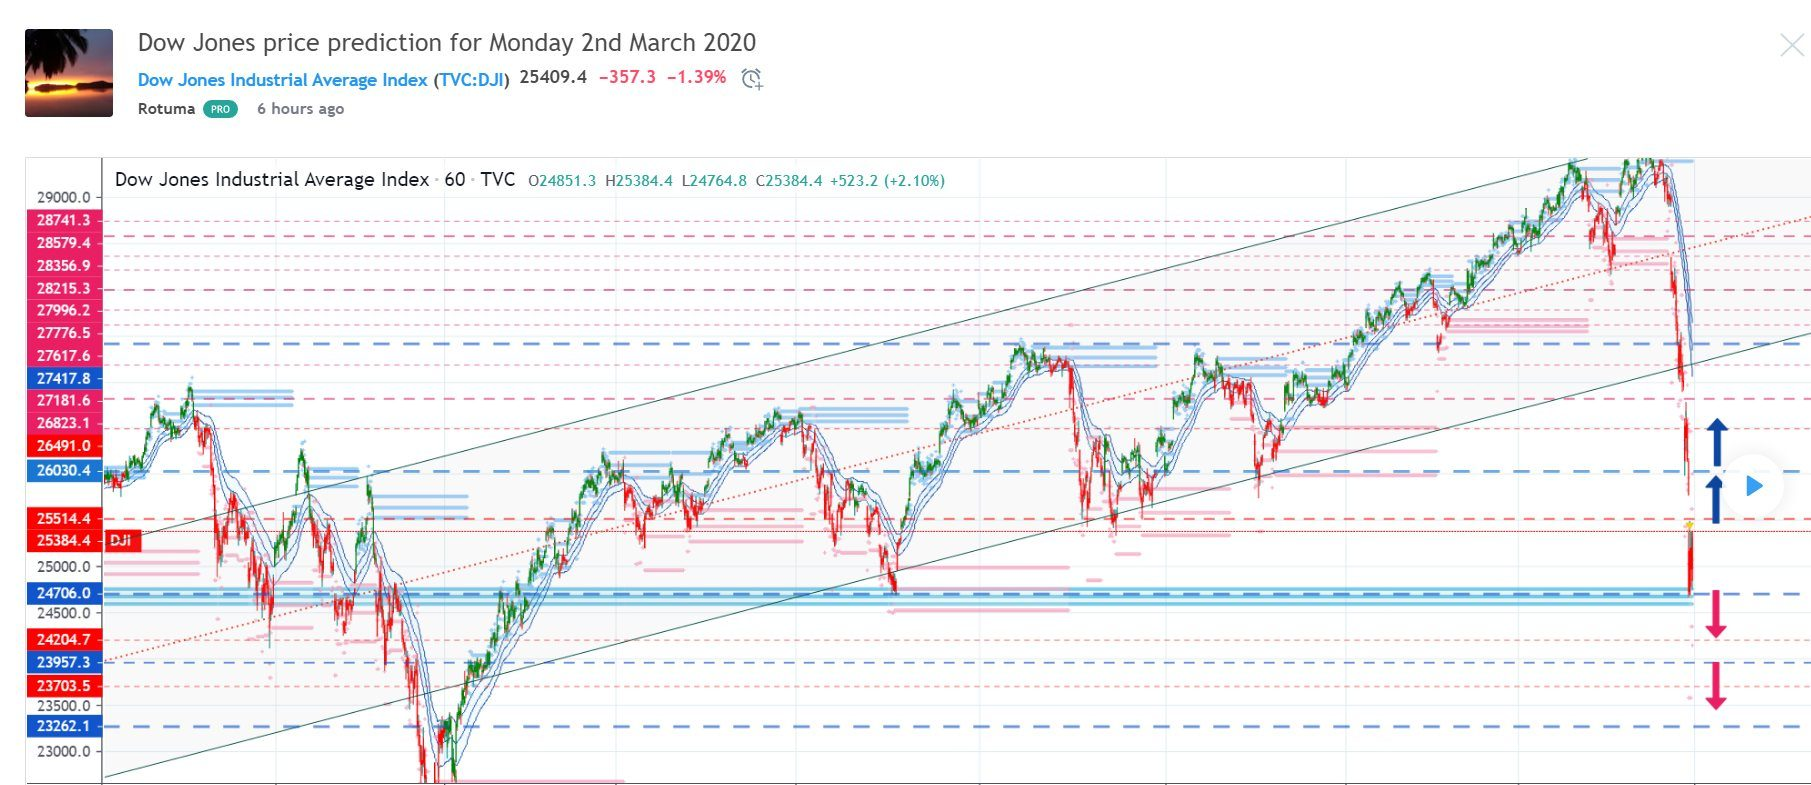 Dow Jones Price Prediction For Monday 2nd March 2020